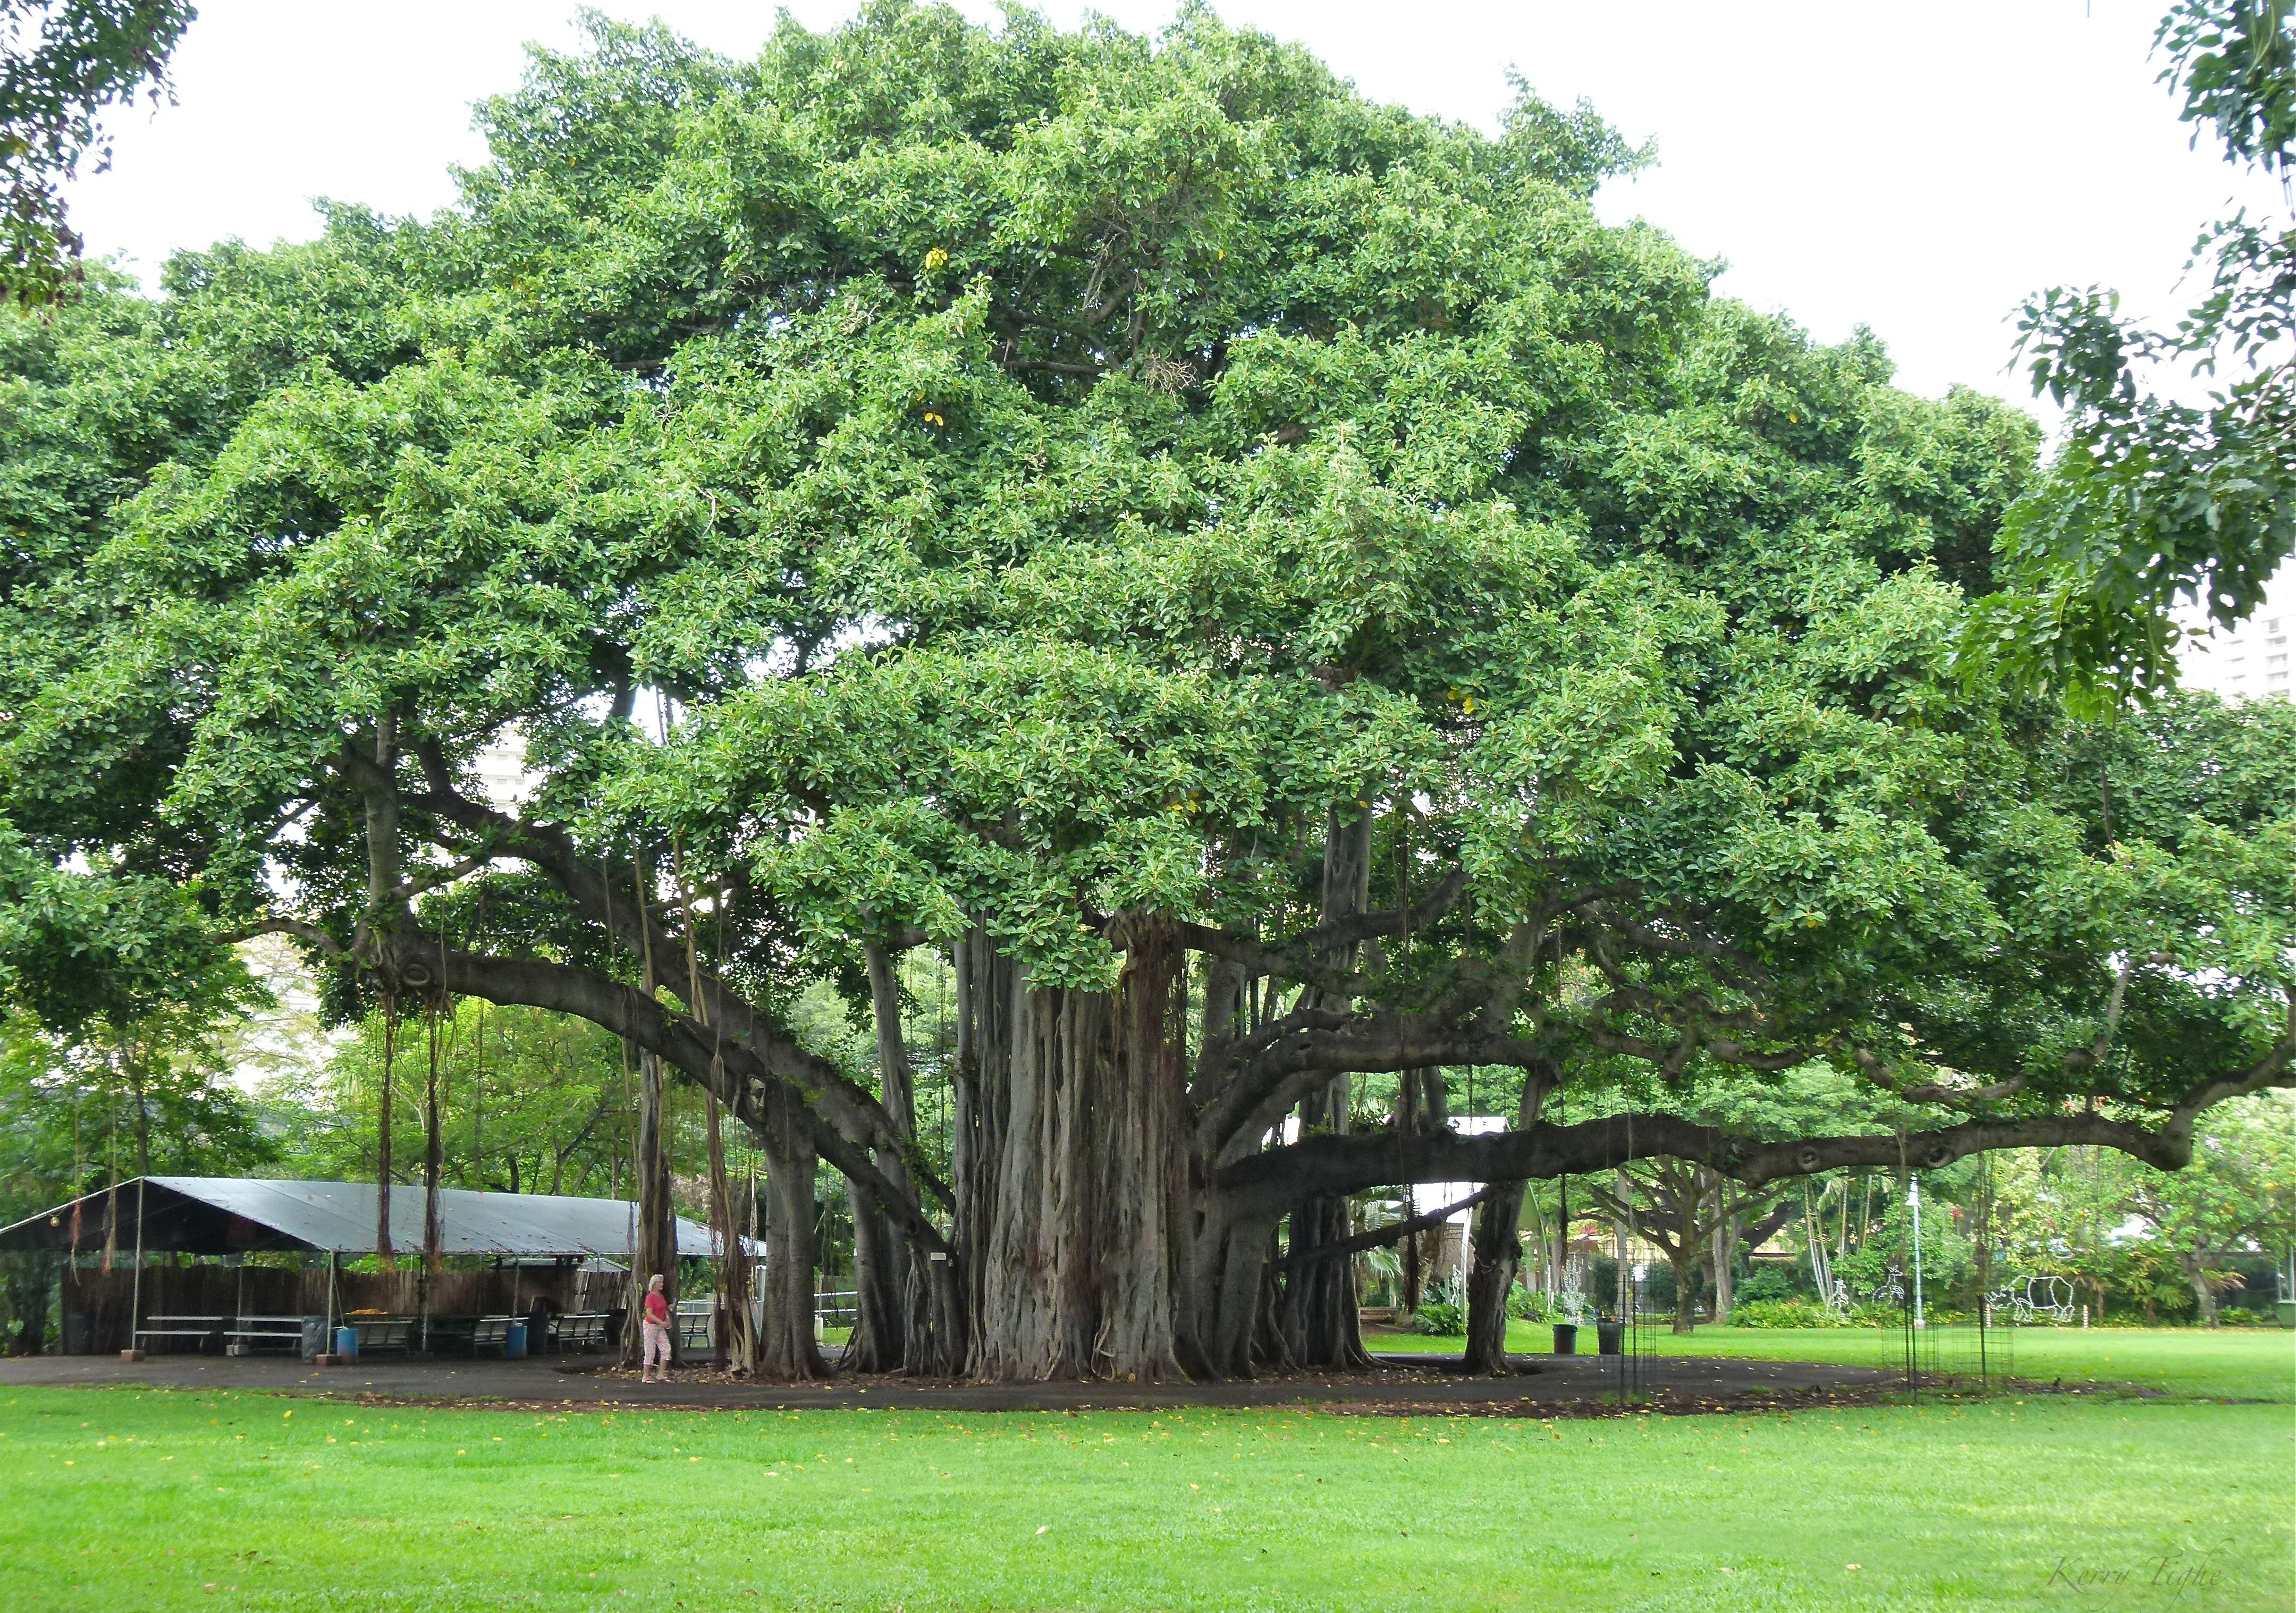 Banyan tree banyan trees my next passion ideas for the house banyan tree banyan trees my next passion fandeluxe Choice Image